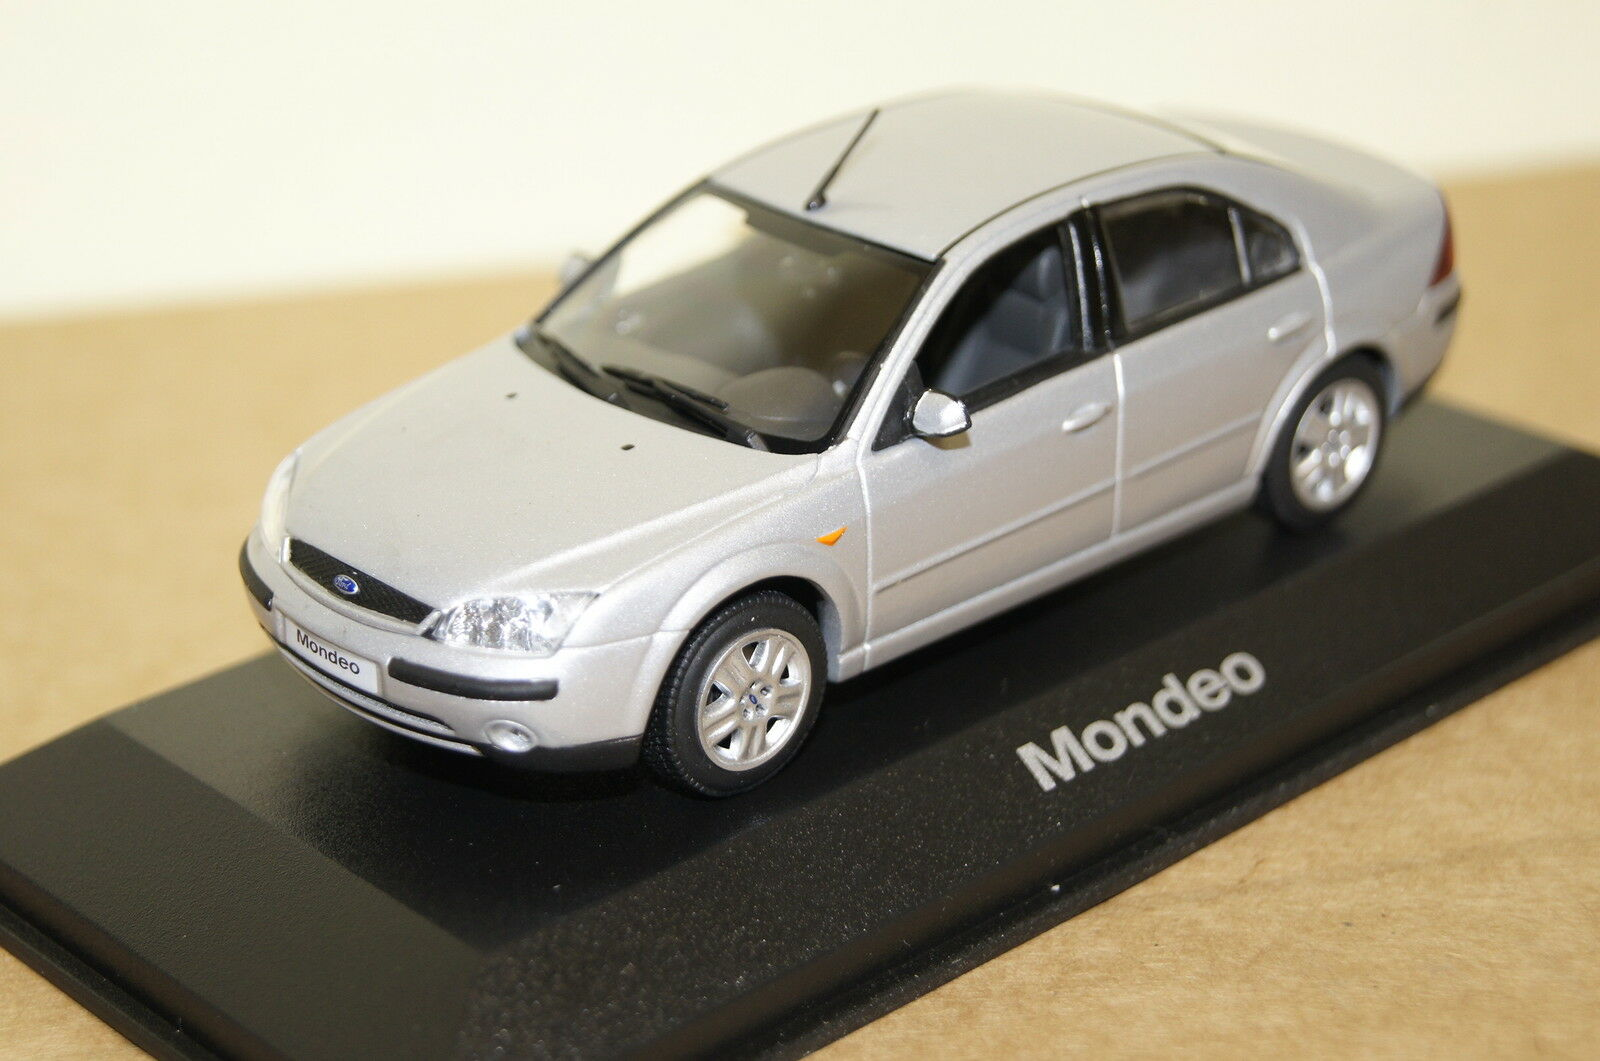 Ford Mondeo silver 1 43 Ford  Minichamps neu + OVP